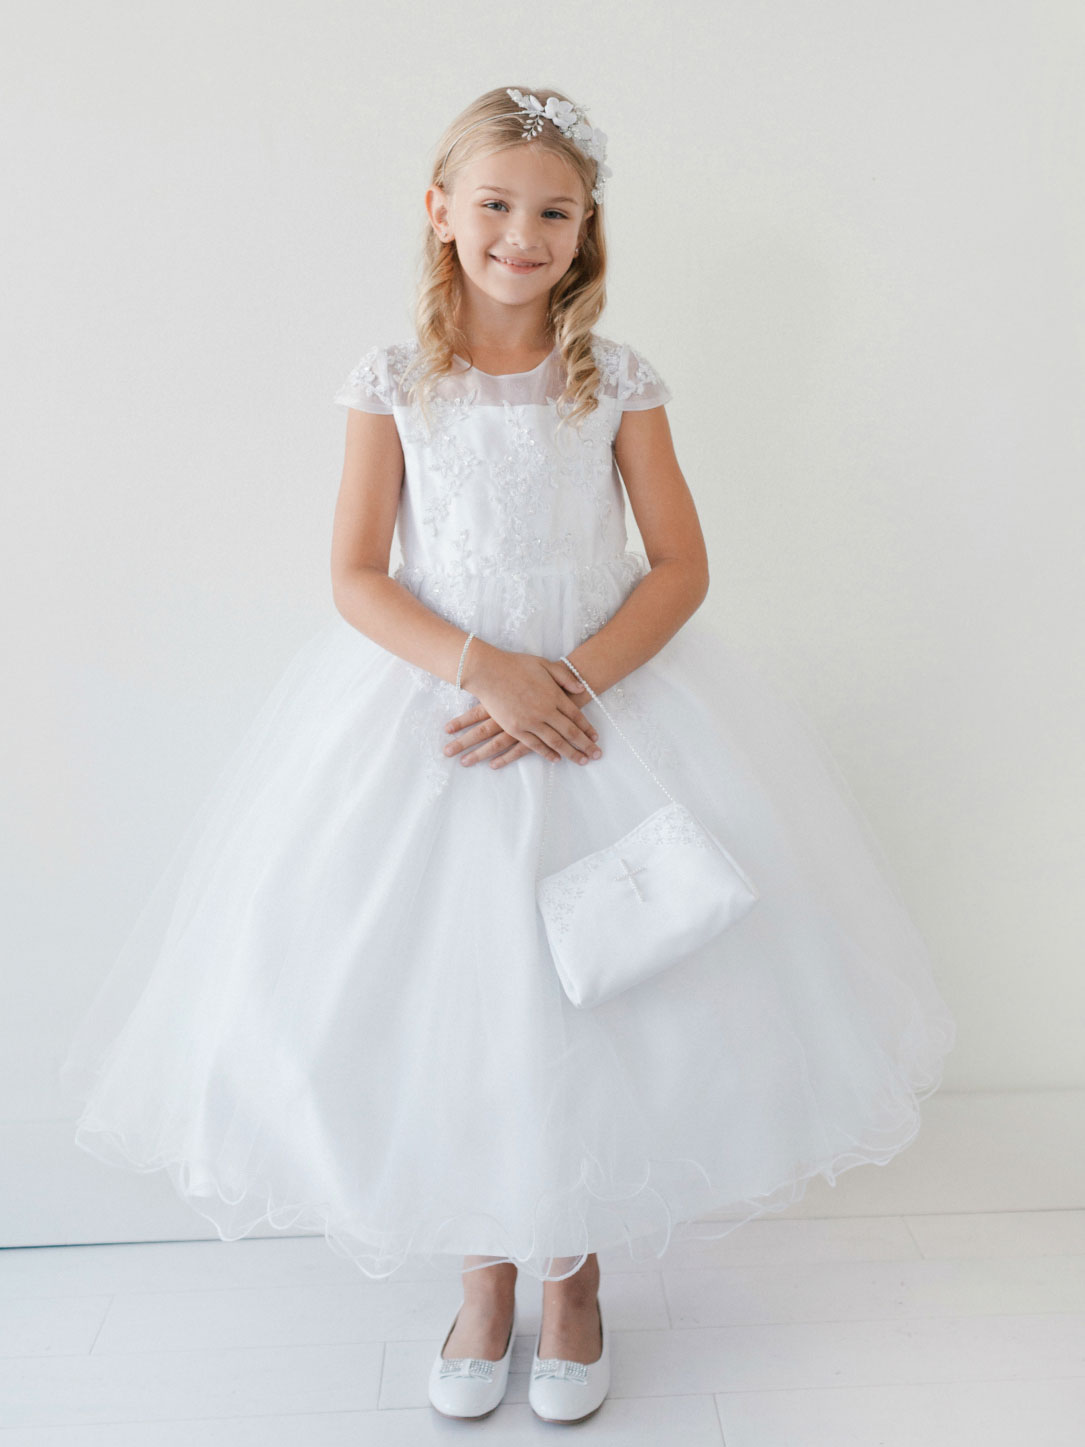 Tt 5695 Girls Dress Style 5695 White Cap Sleeve Tulle